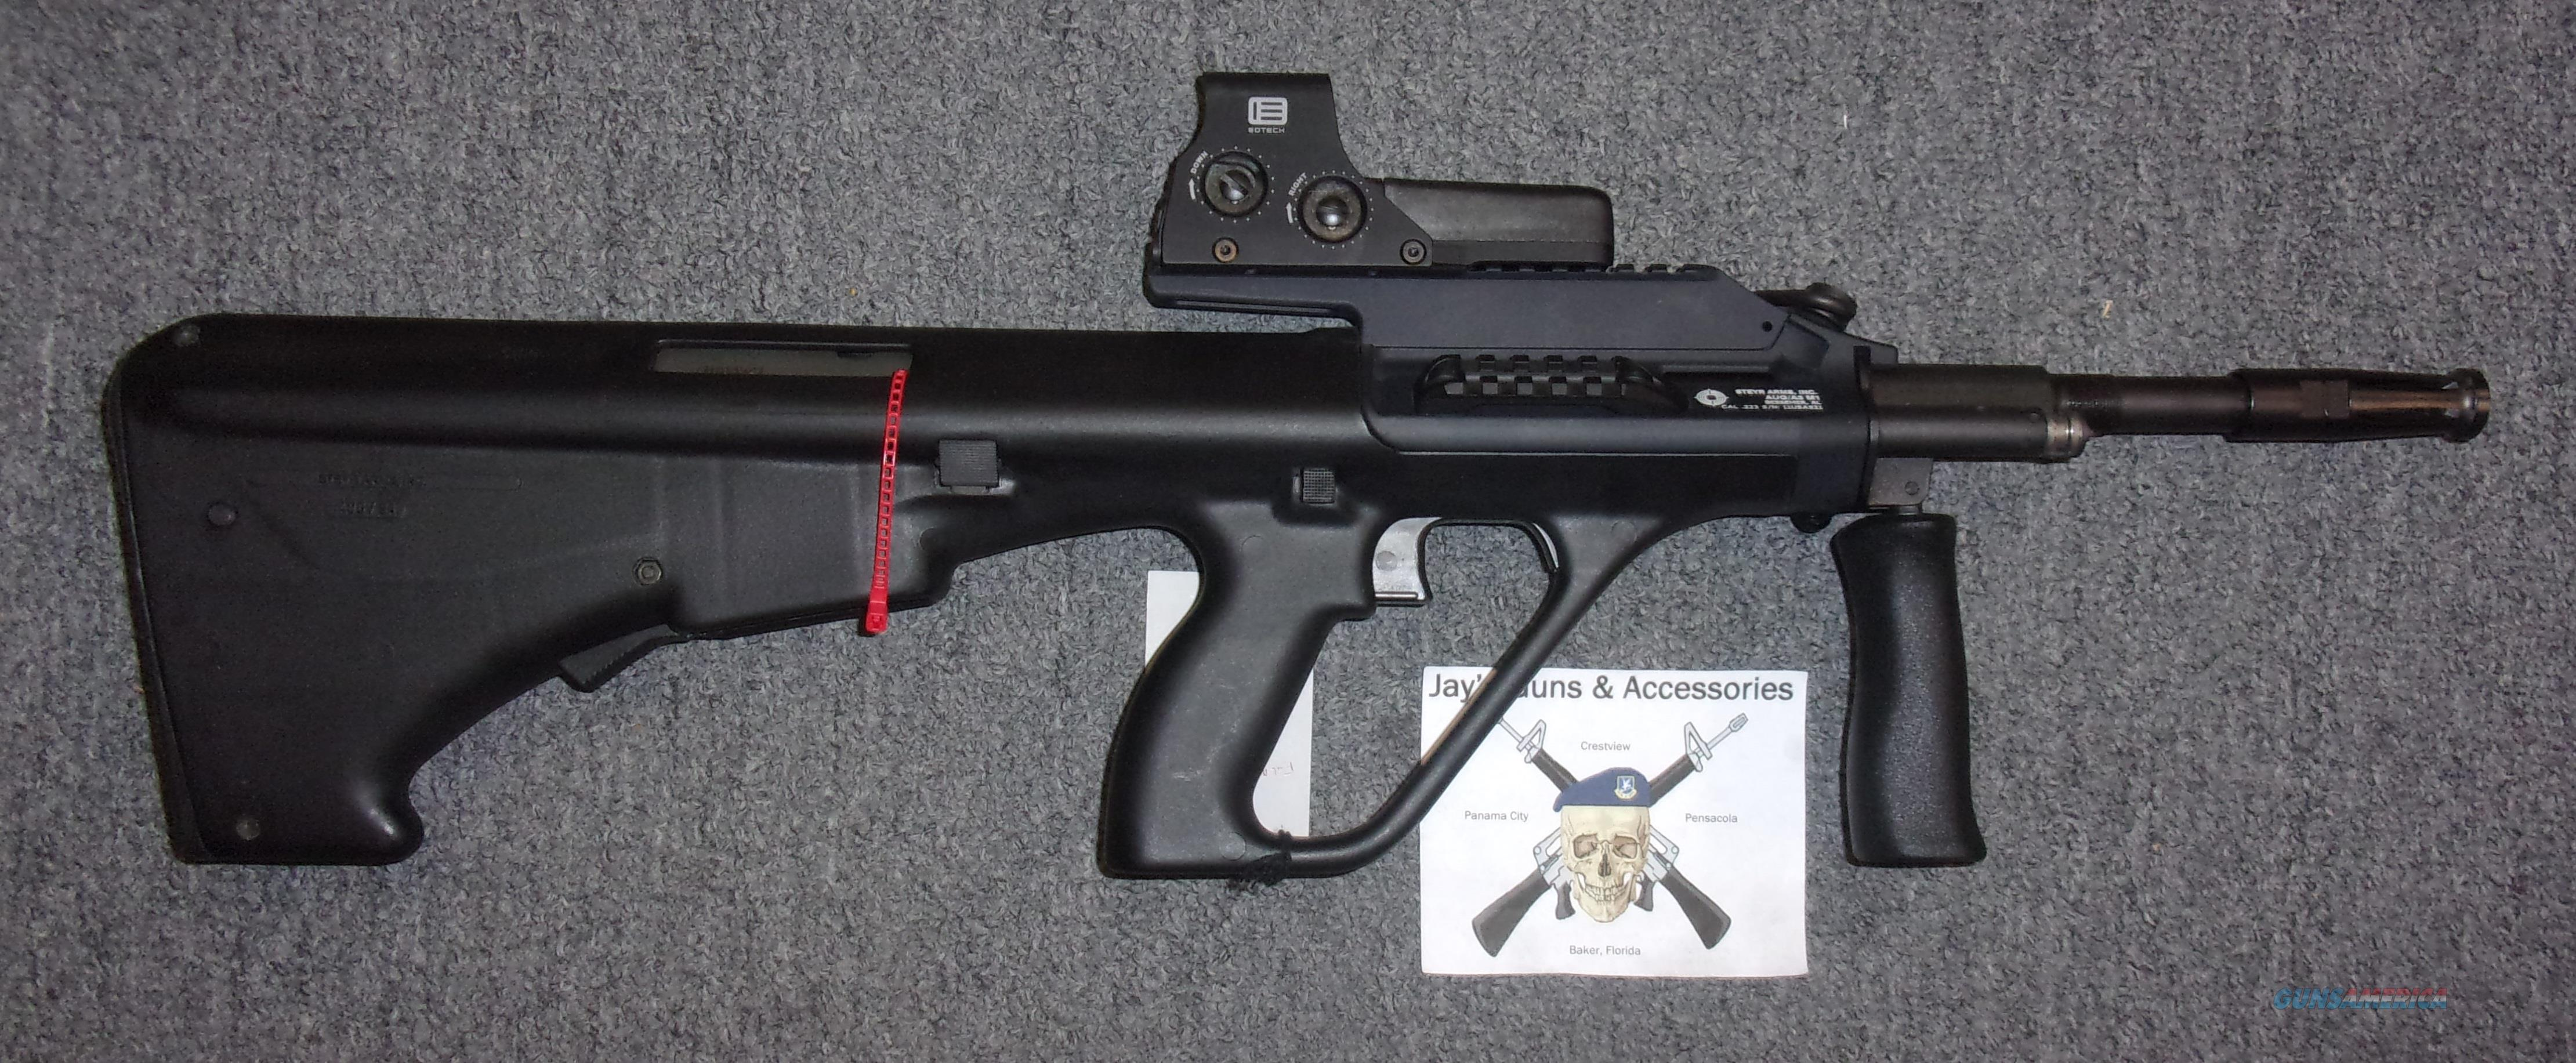 Steyr Arms, Inc AUG/A3 M1 w/Red Dot